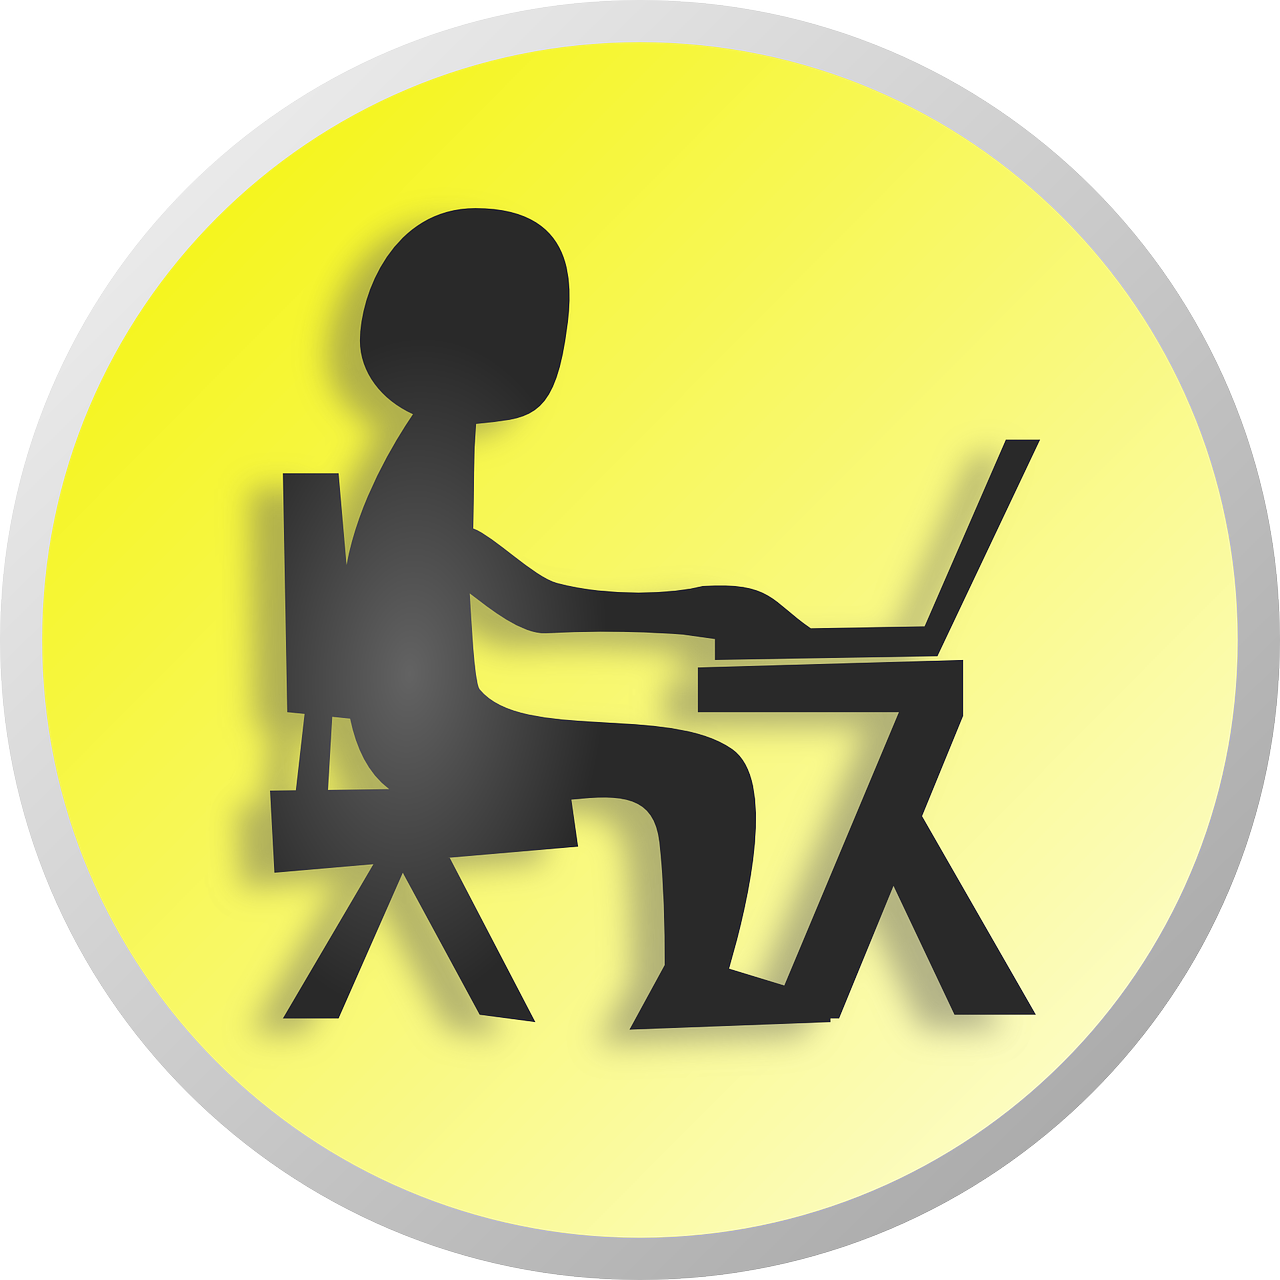 Coding nobby design ideas. Working clipart work hour